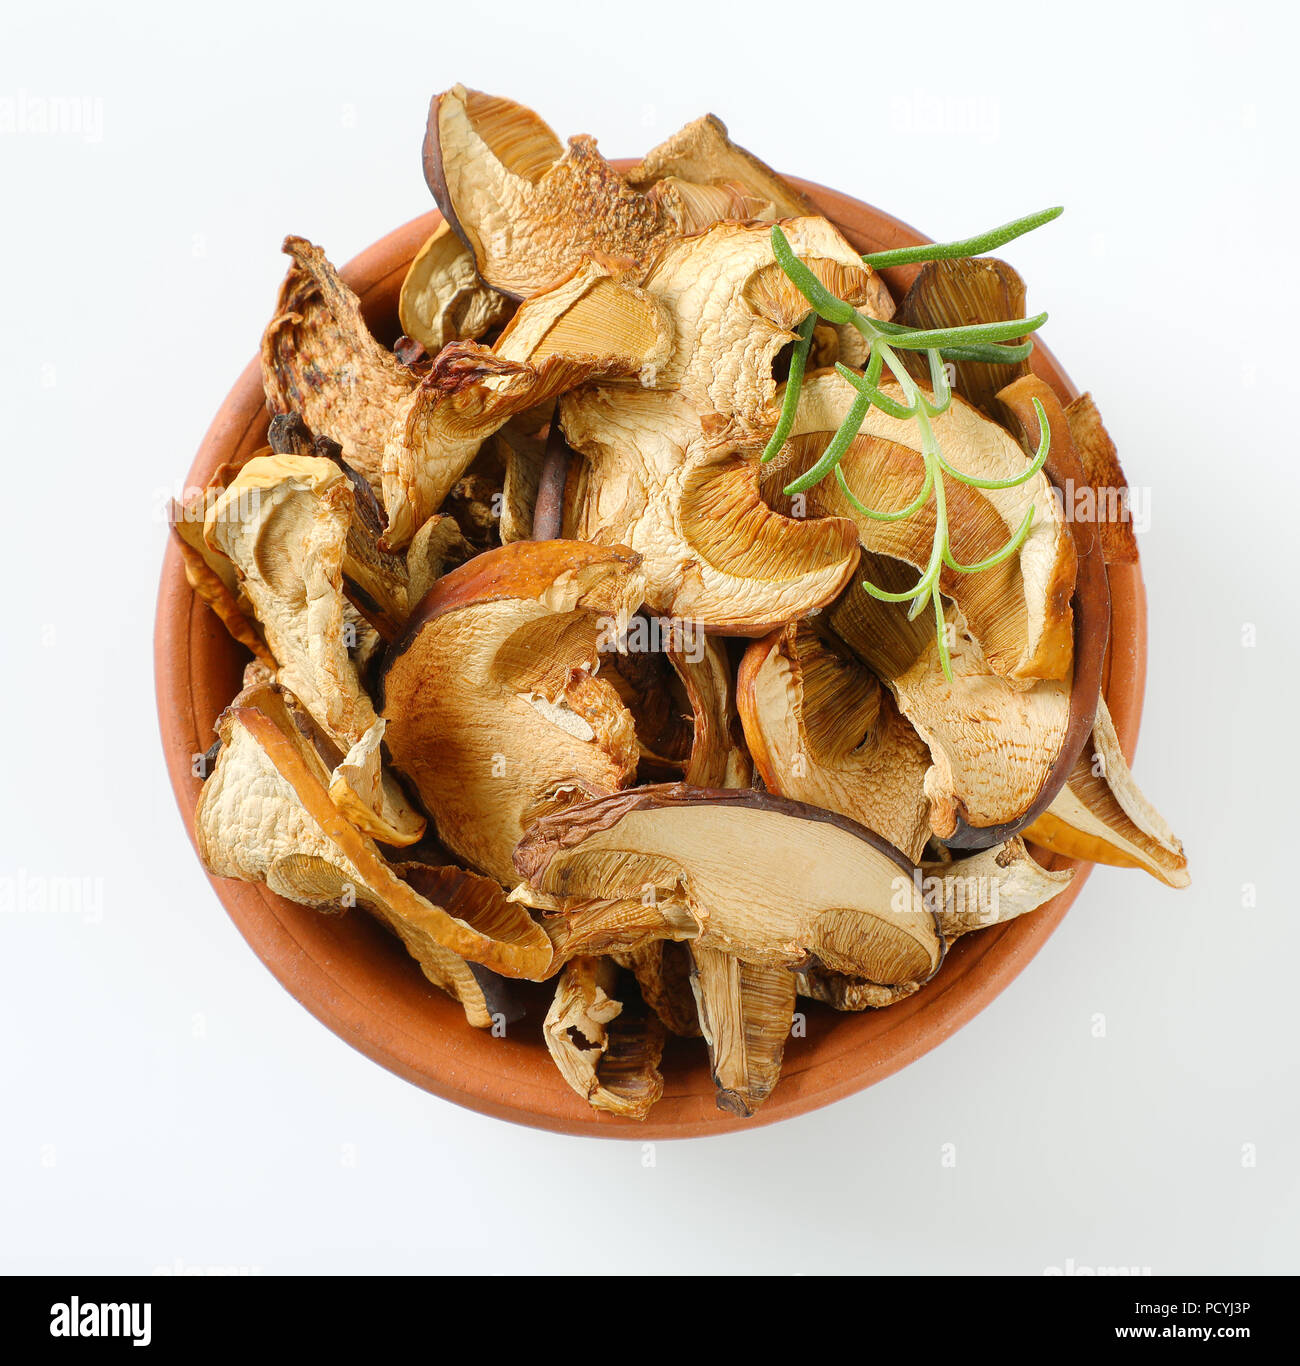 bowl of dried mushrooms on white background - Stock Image